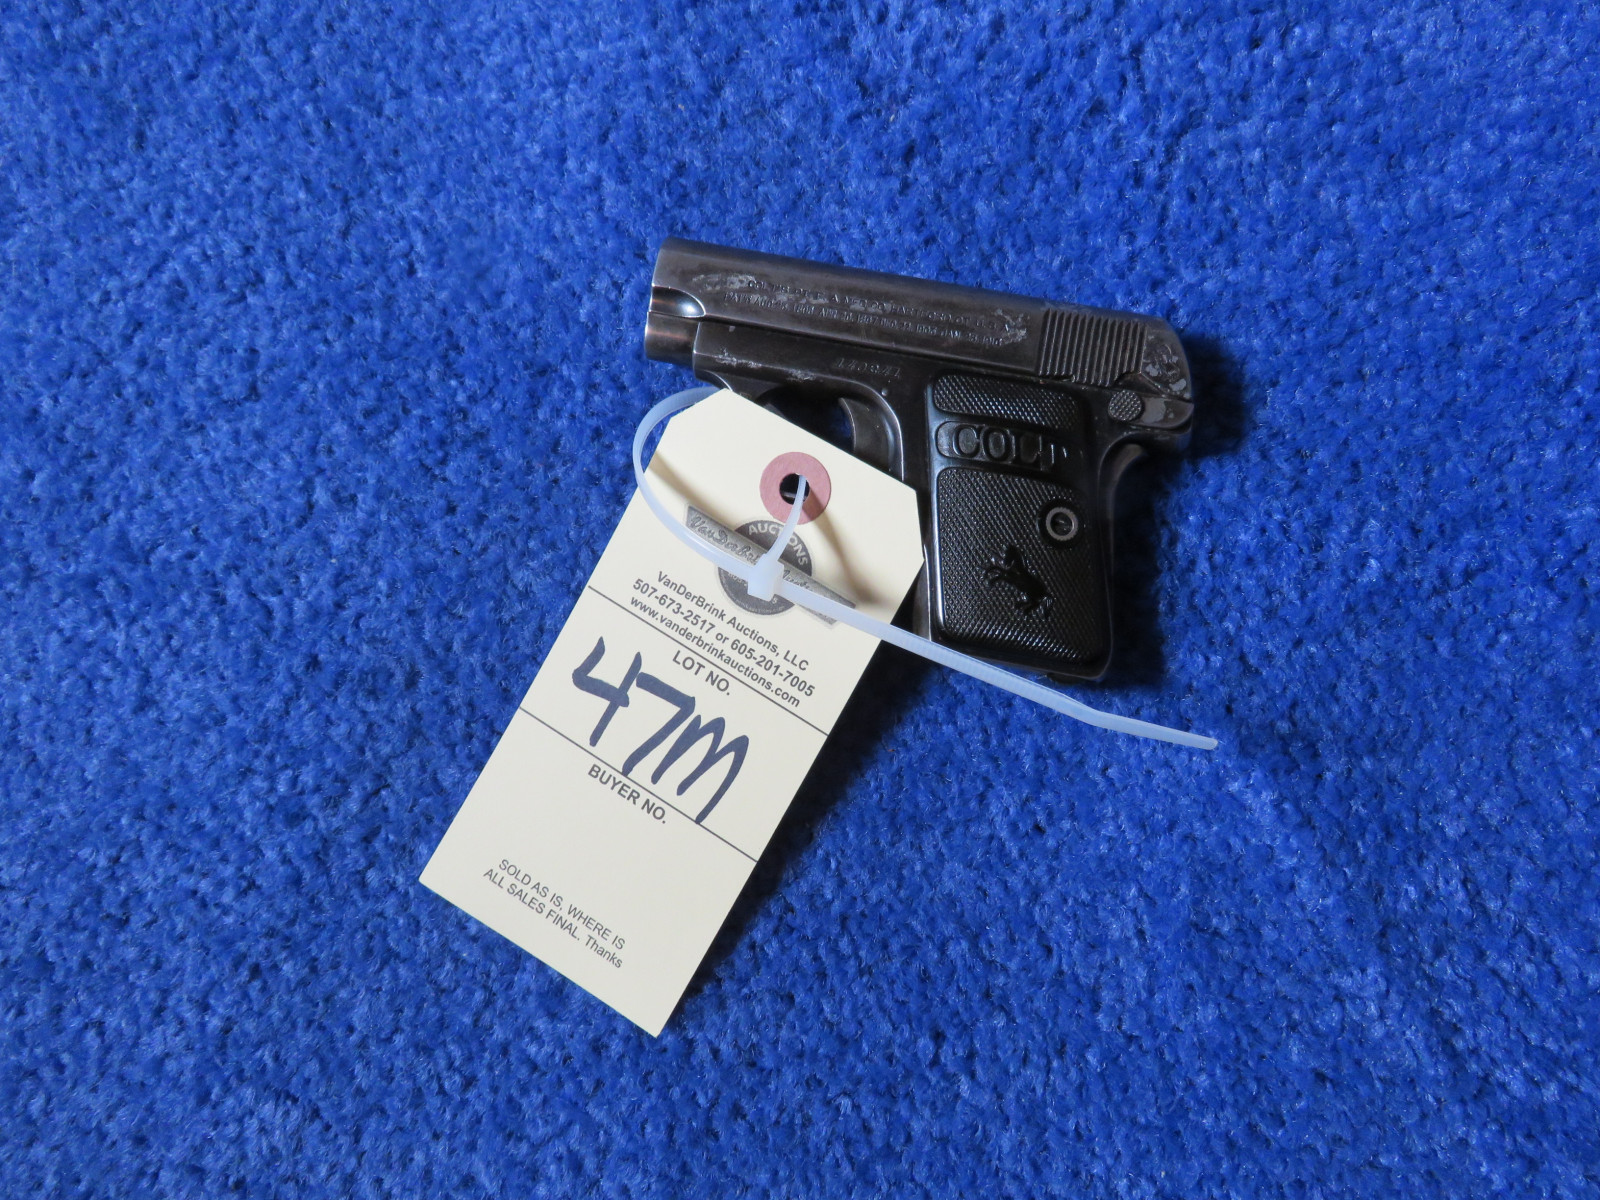 Colt Model 1908 Auto .25 Caliber Vest Pocket Pistol-Handgun - Image 3